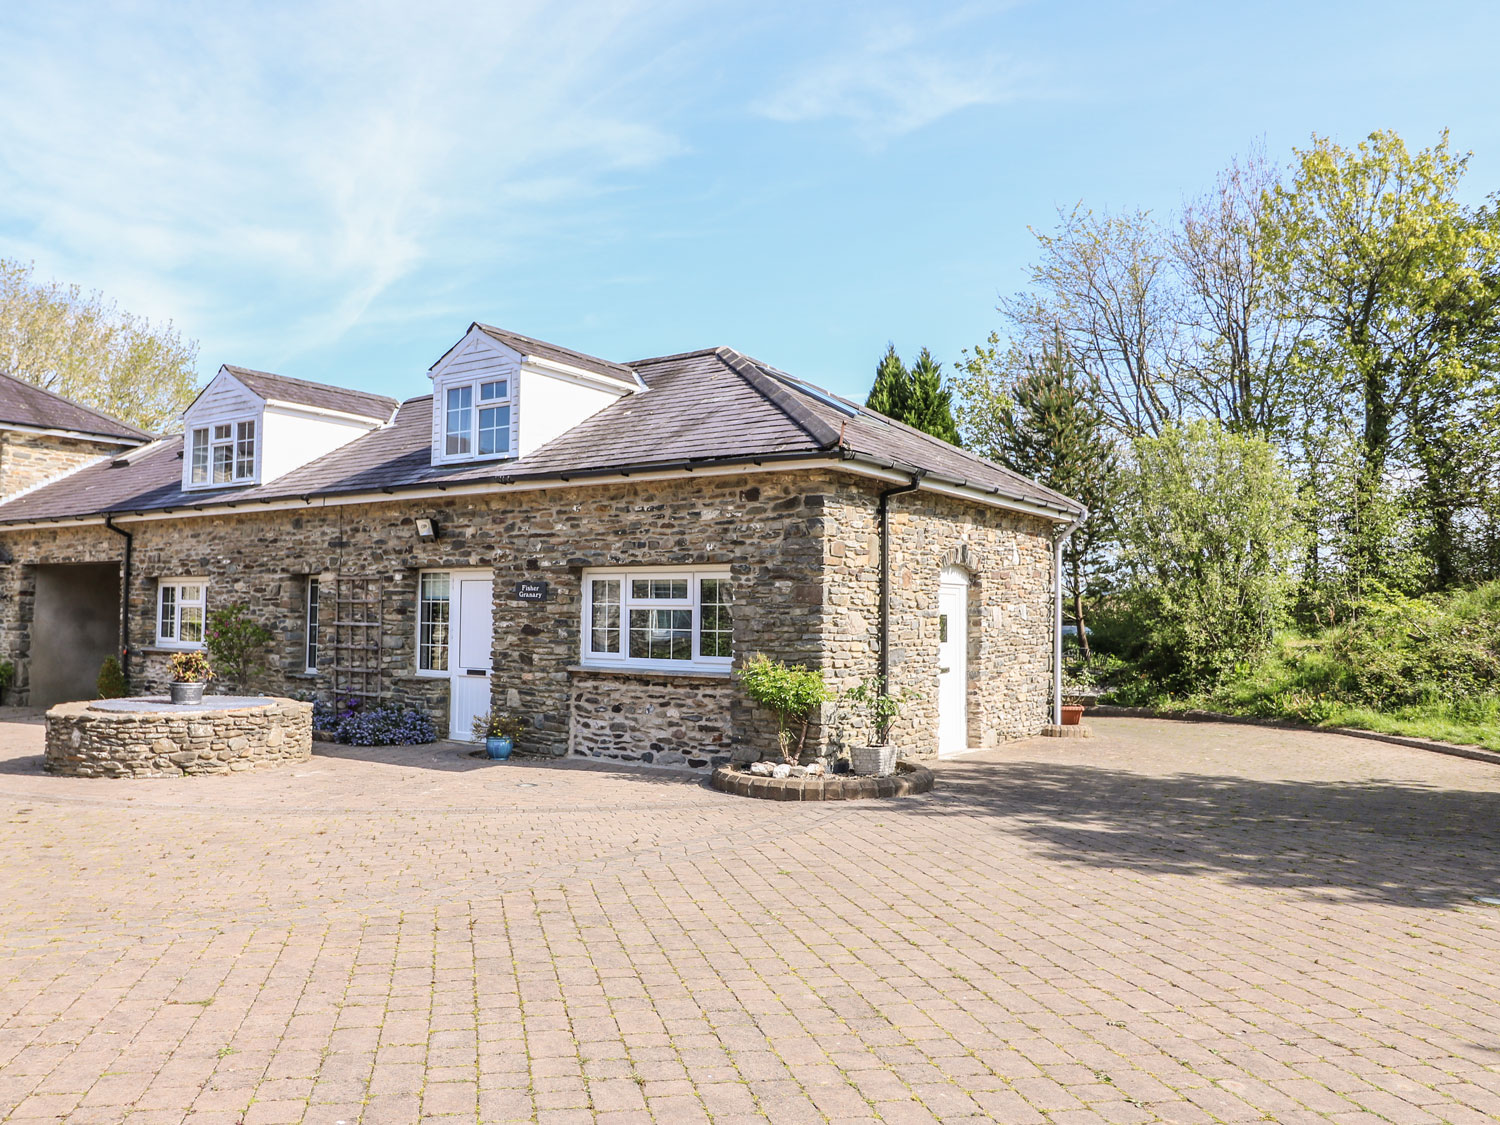 4 bedroom Cottage for rent in Lampeter